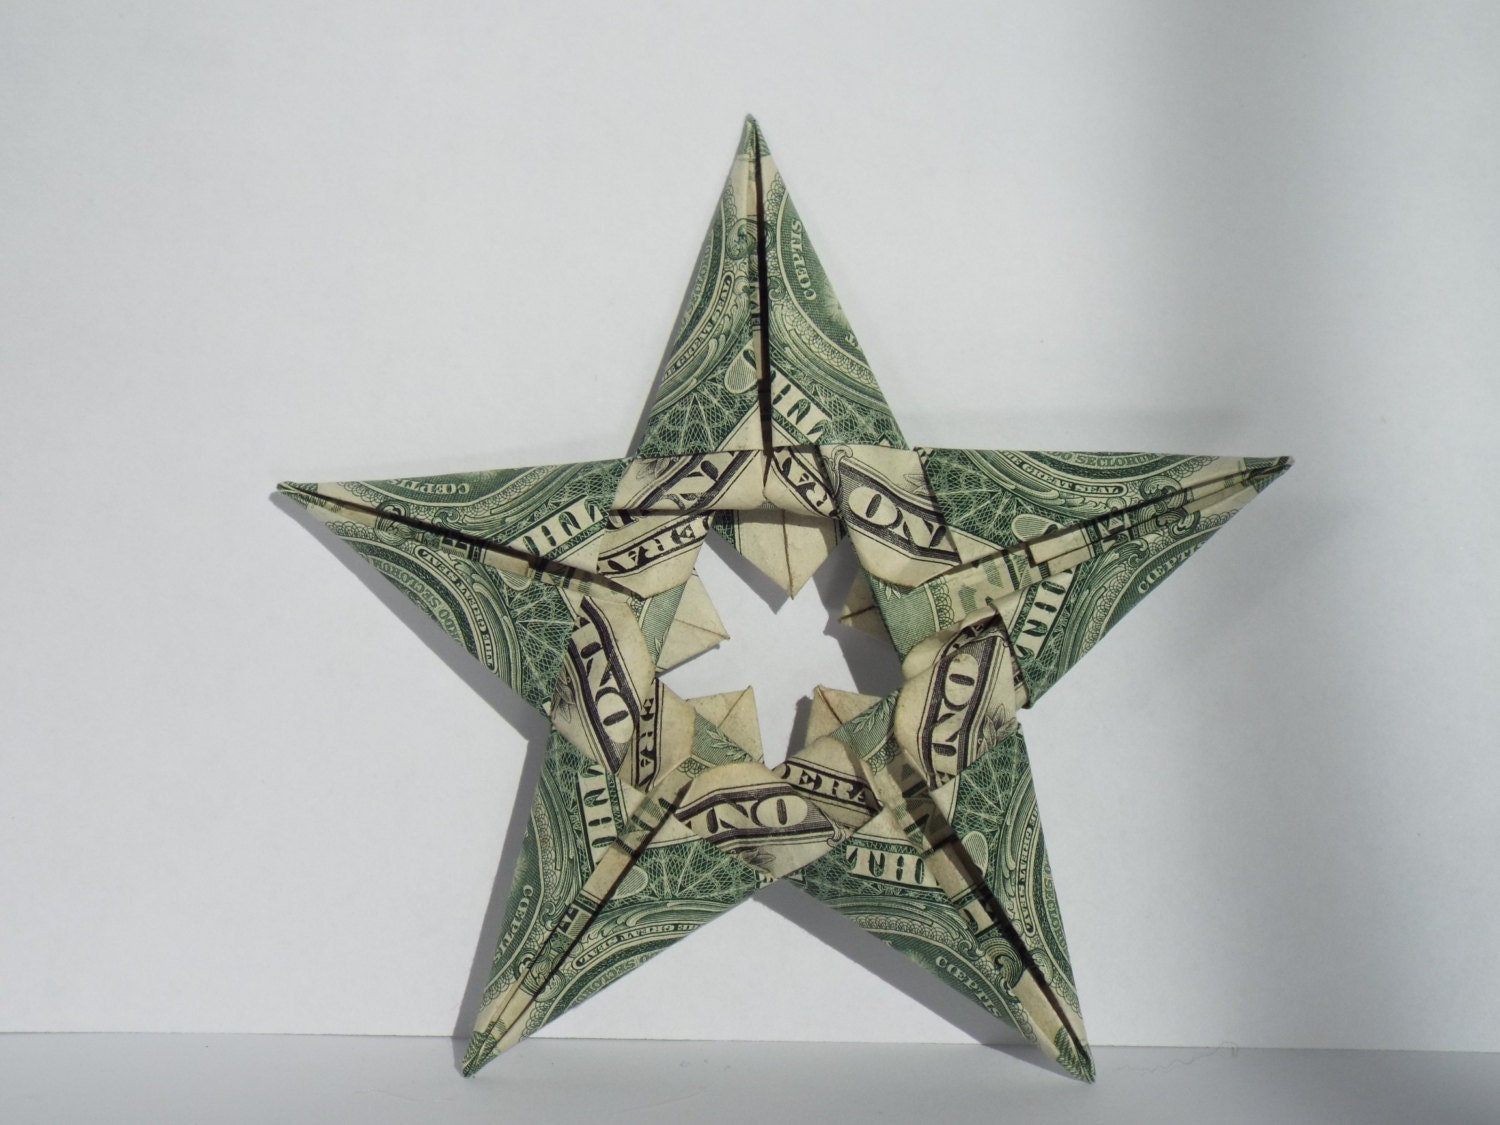 Dollar Bill Origami Five Pointed Star - photo#2